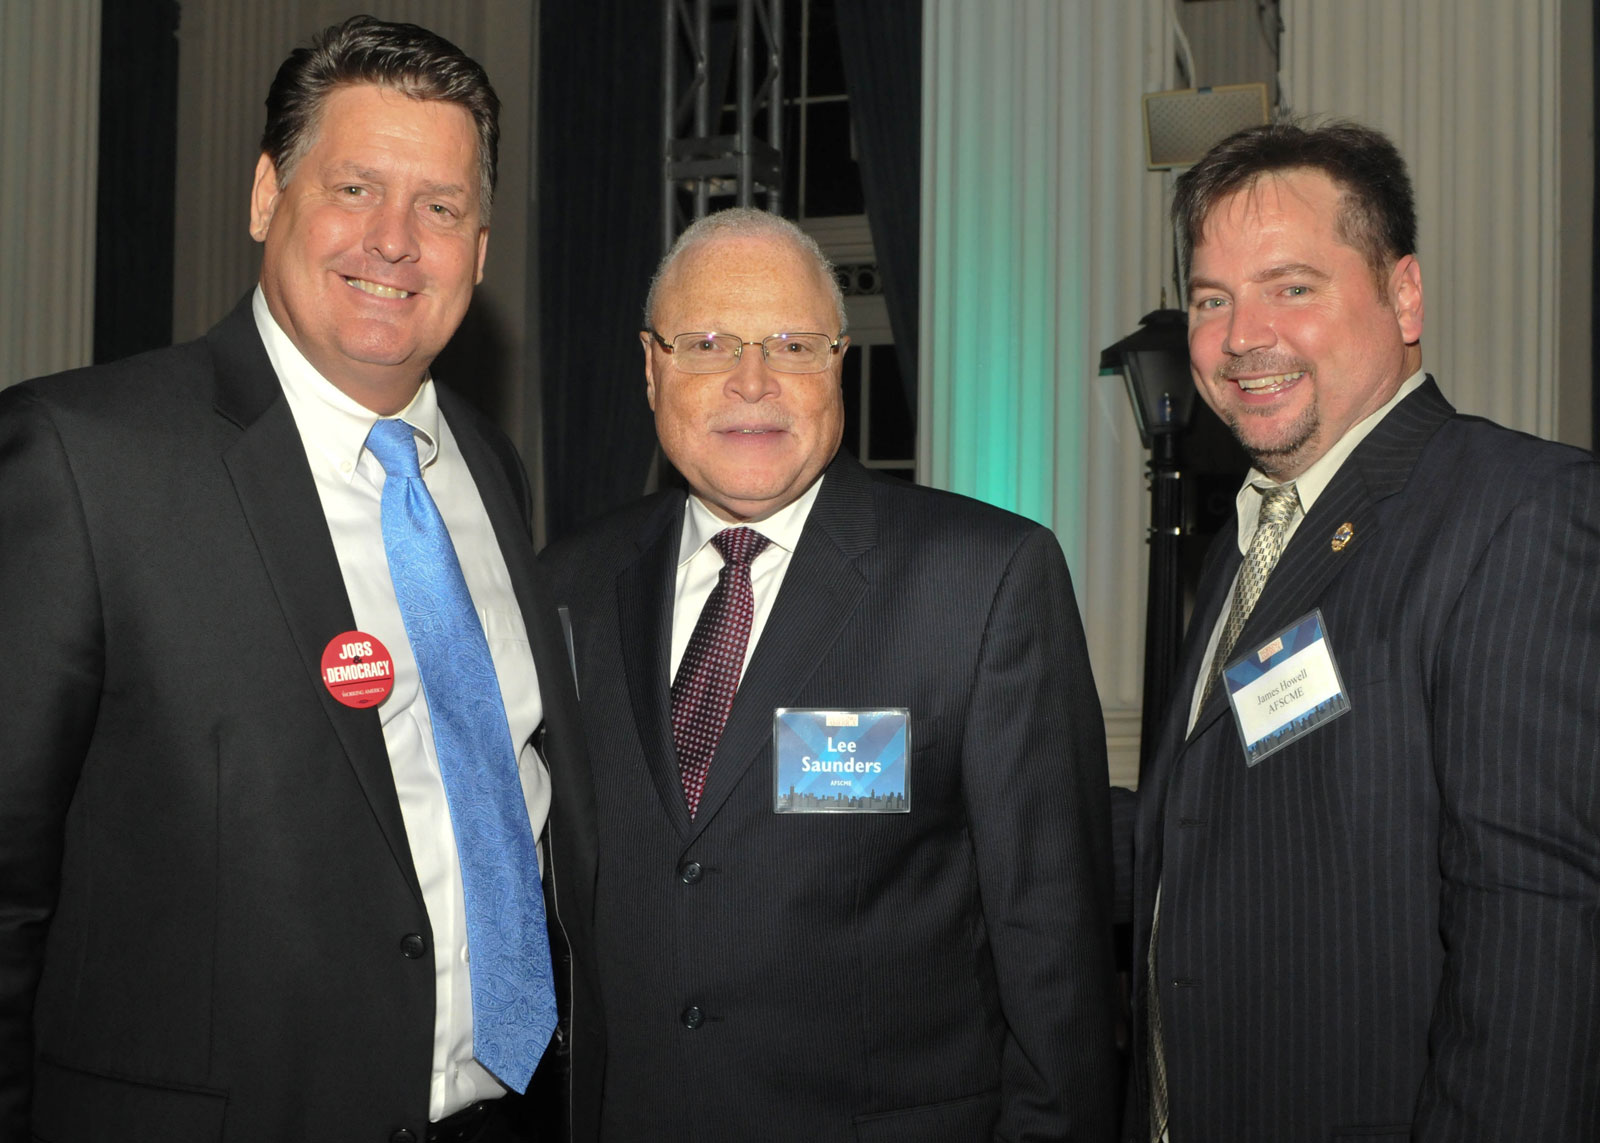 Jim Flanagan with Lee Saunders, President of AFSCME International and Jim Howell, Director of Organizing of AFSCME international